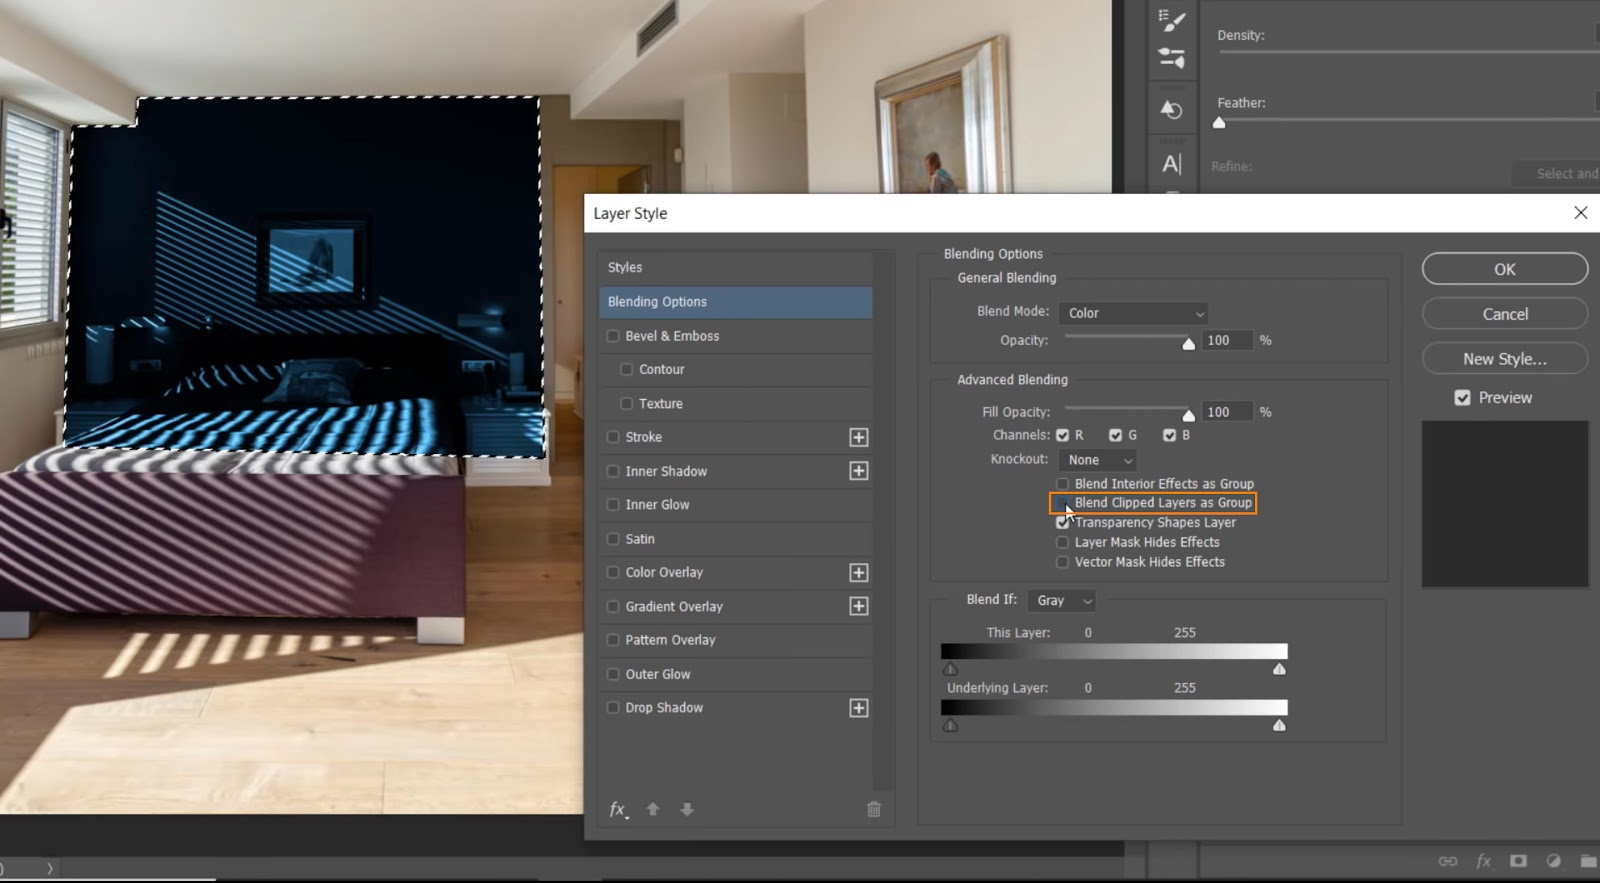 Uncheck the box for Blend Clipped Layers as Group